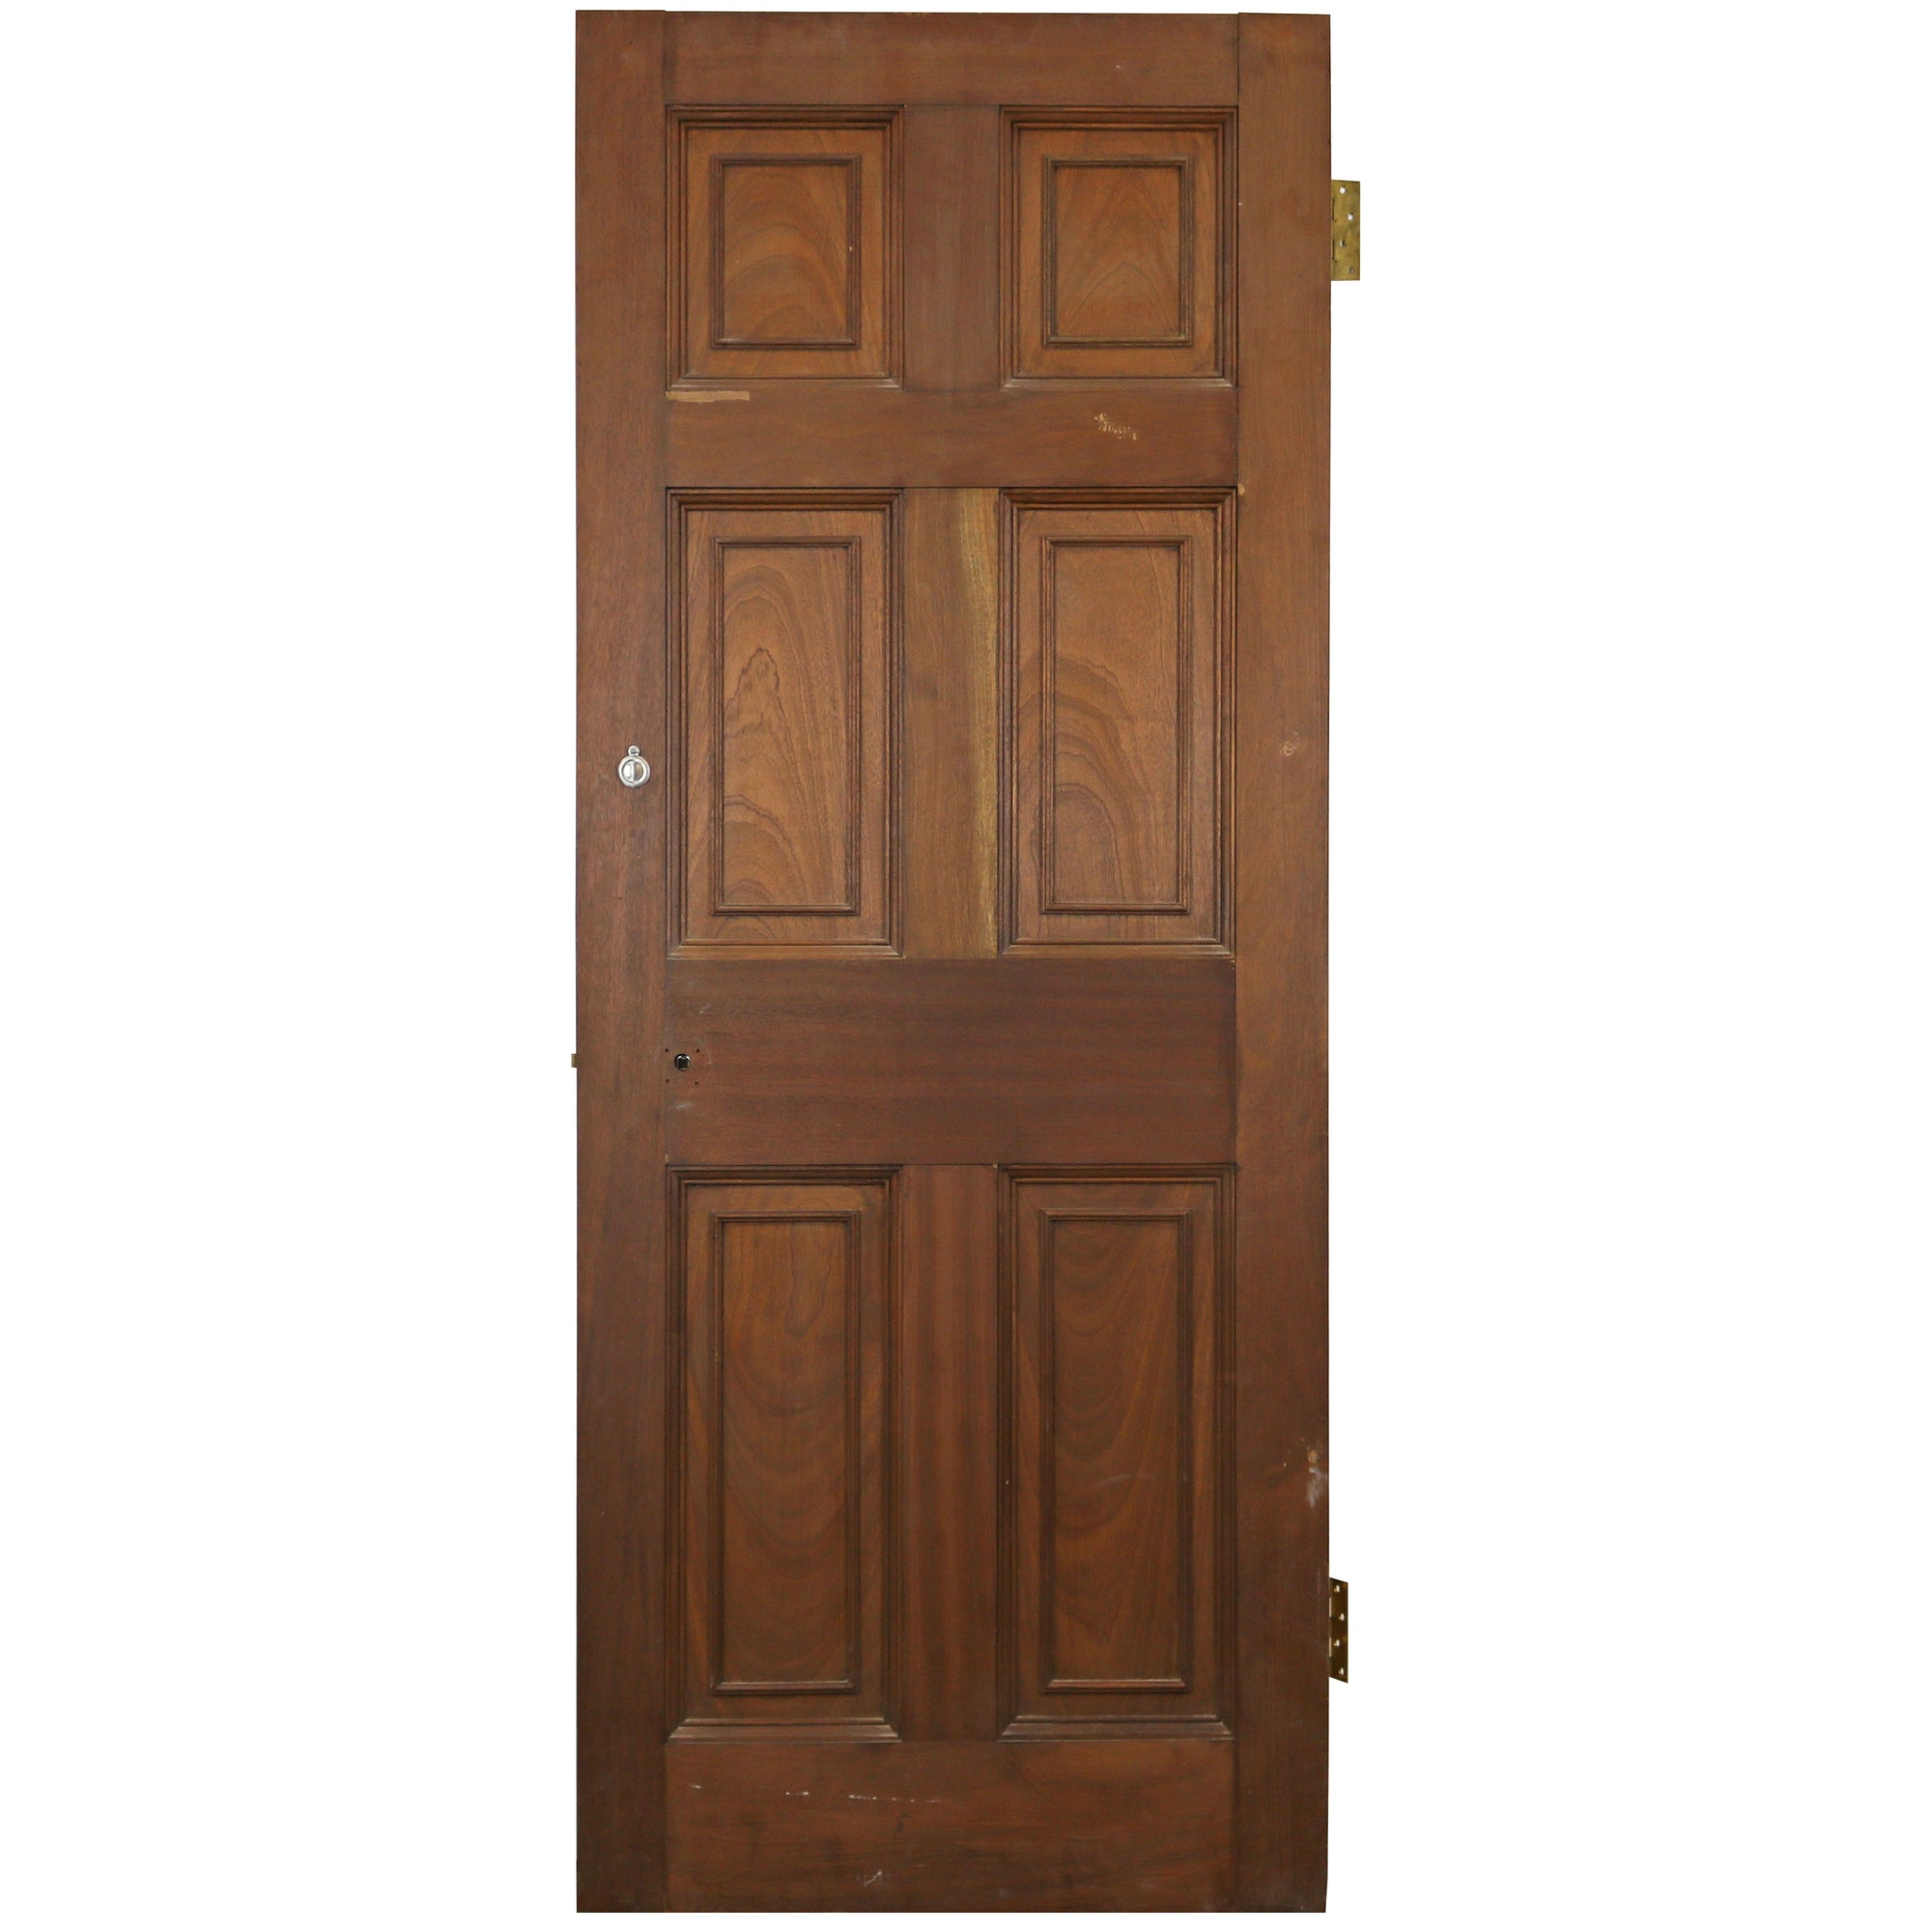 Reclaimed Mahogany Georgian Style Door - 188cm x 75.5cm - architectural-forum